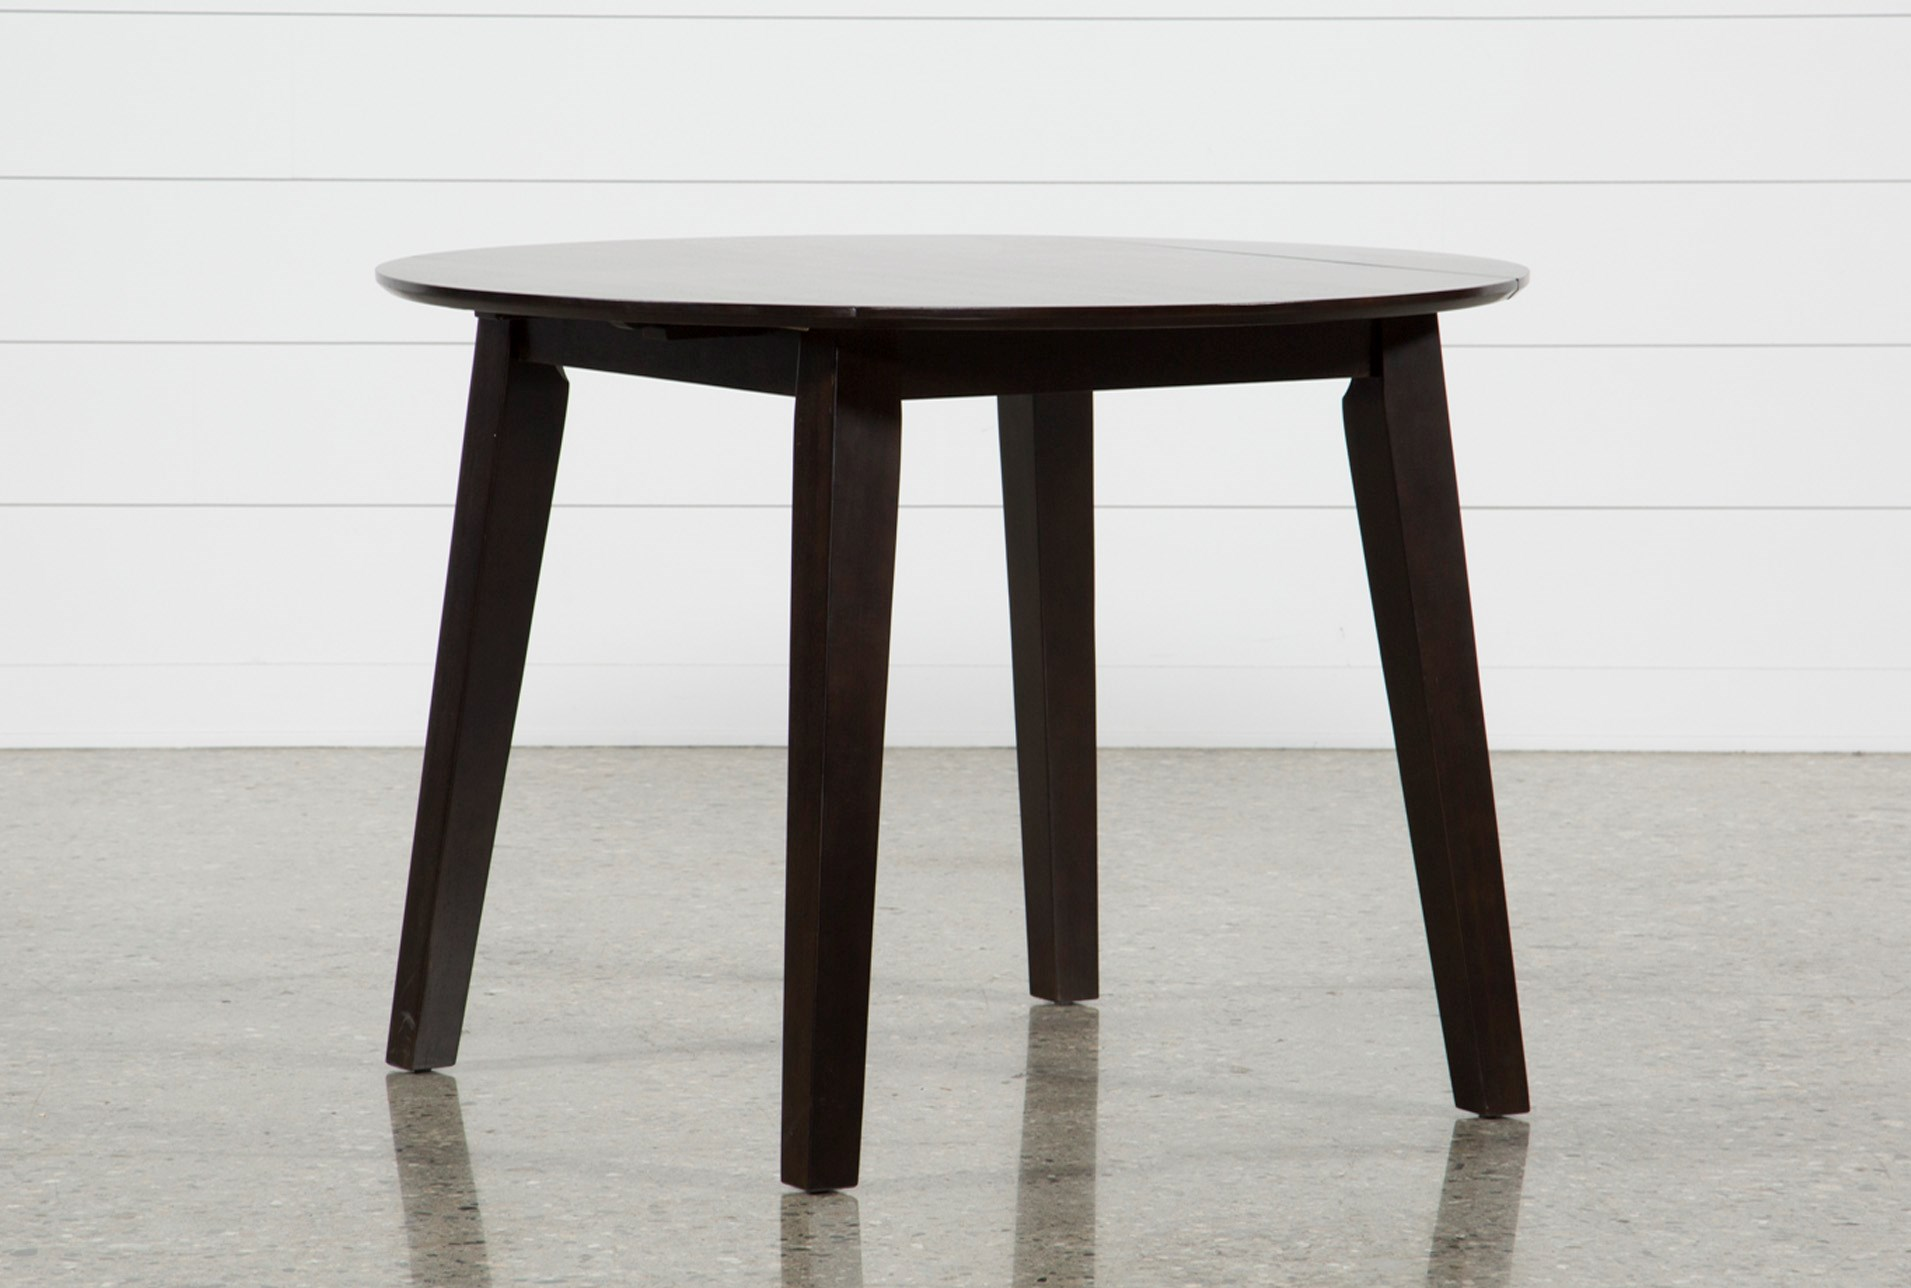 moxy espresso round dining table living spaces. Black Bedroom Furniture Sets. Home Design Ideas